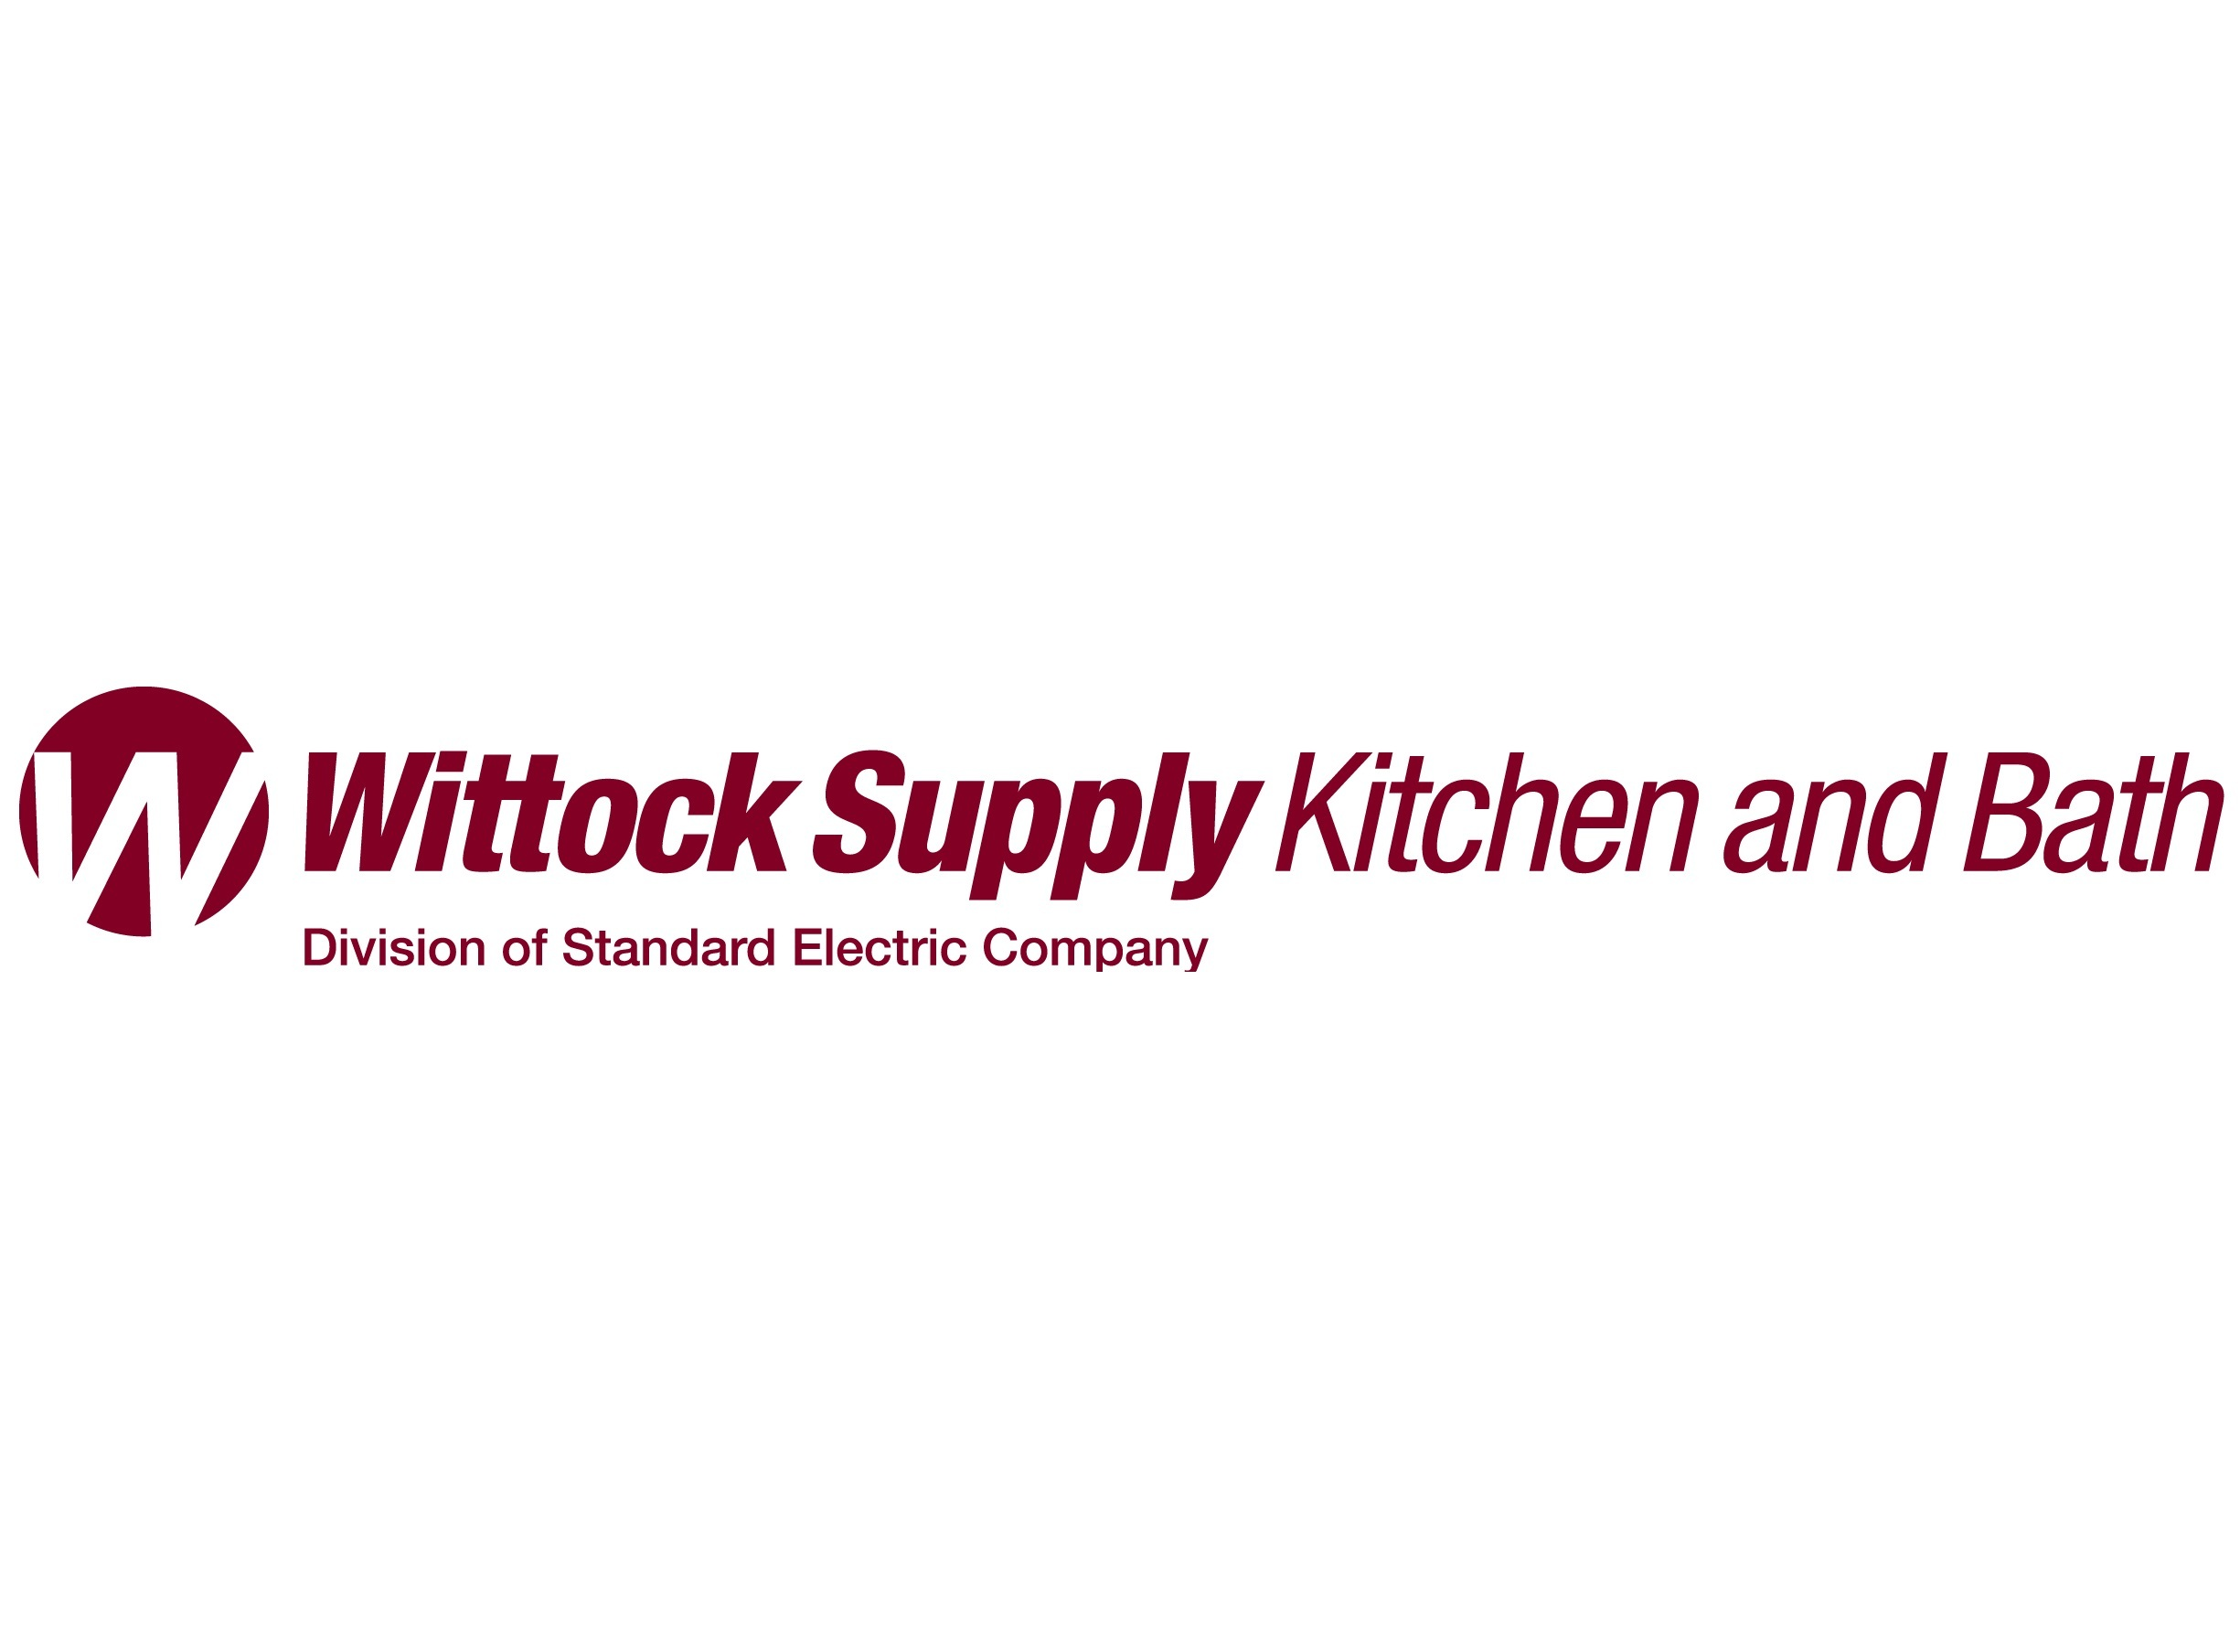 Wittock Supply Kitchen and Bath